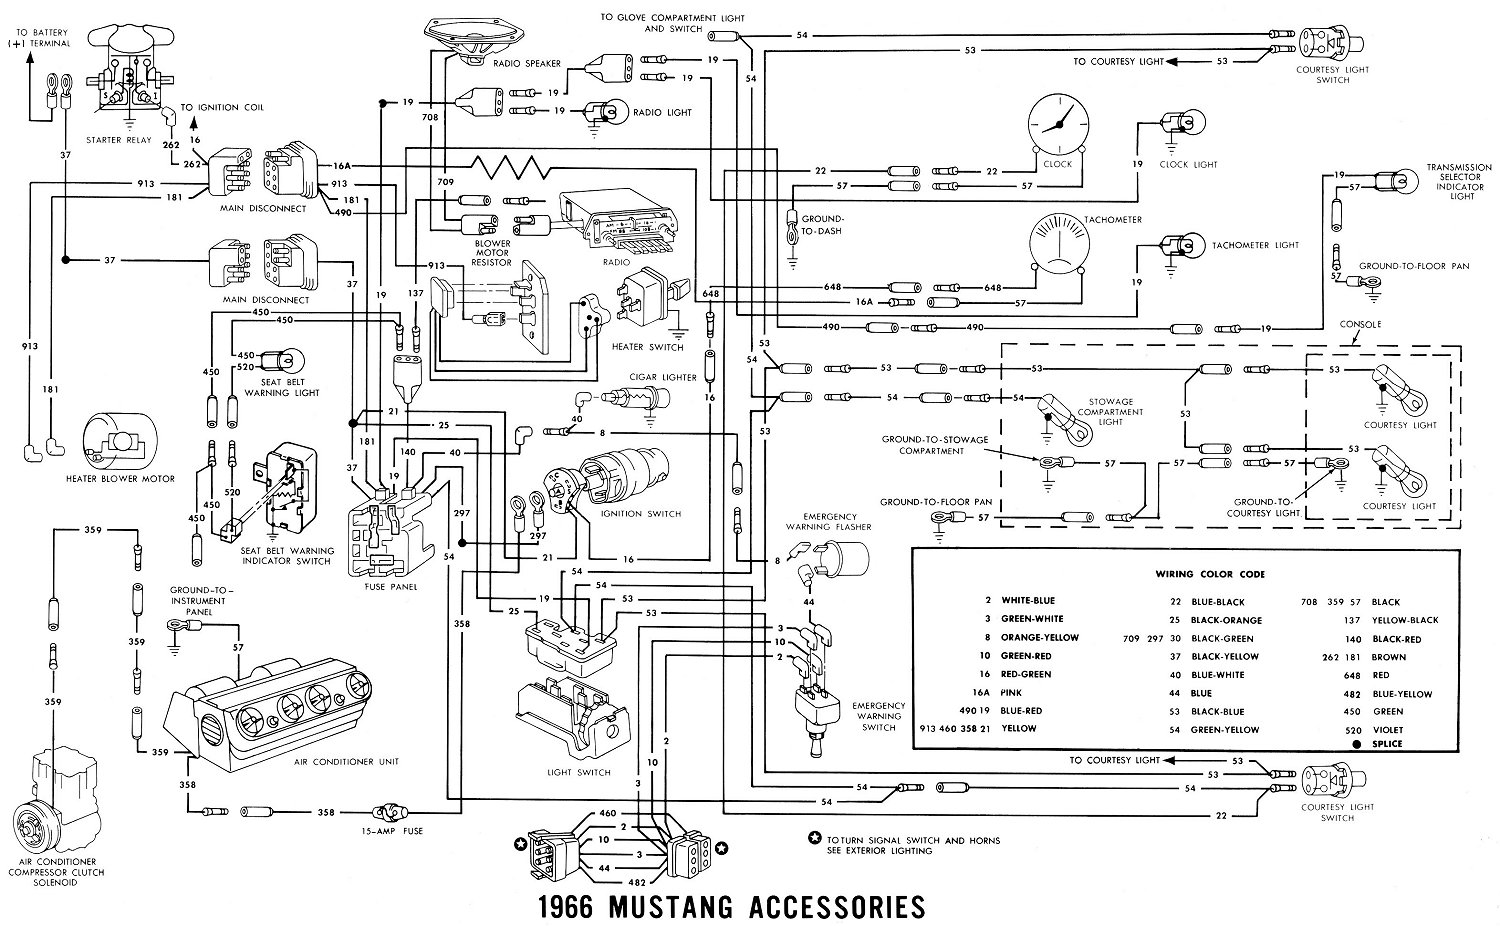 66acces1 1966 mustang wiring diagrams average joe restoration 2007 Mustang Wiring Diagram at soozxer.org